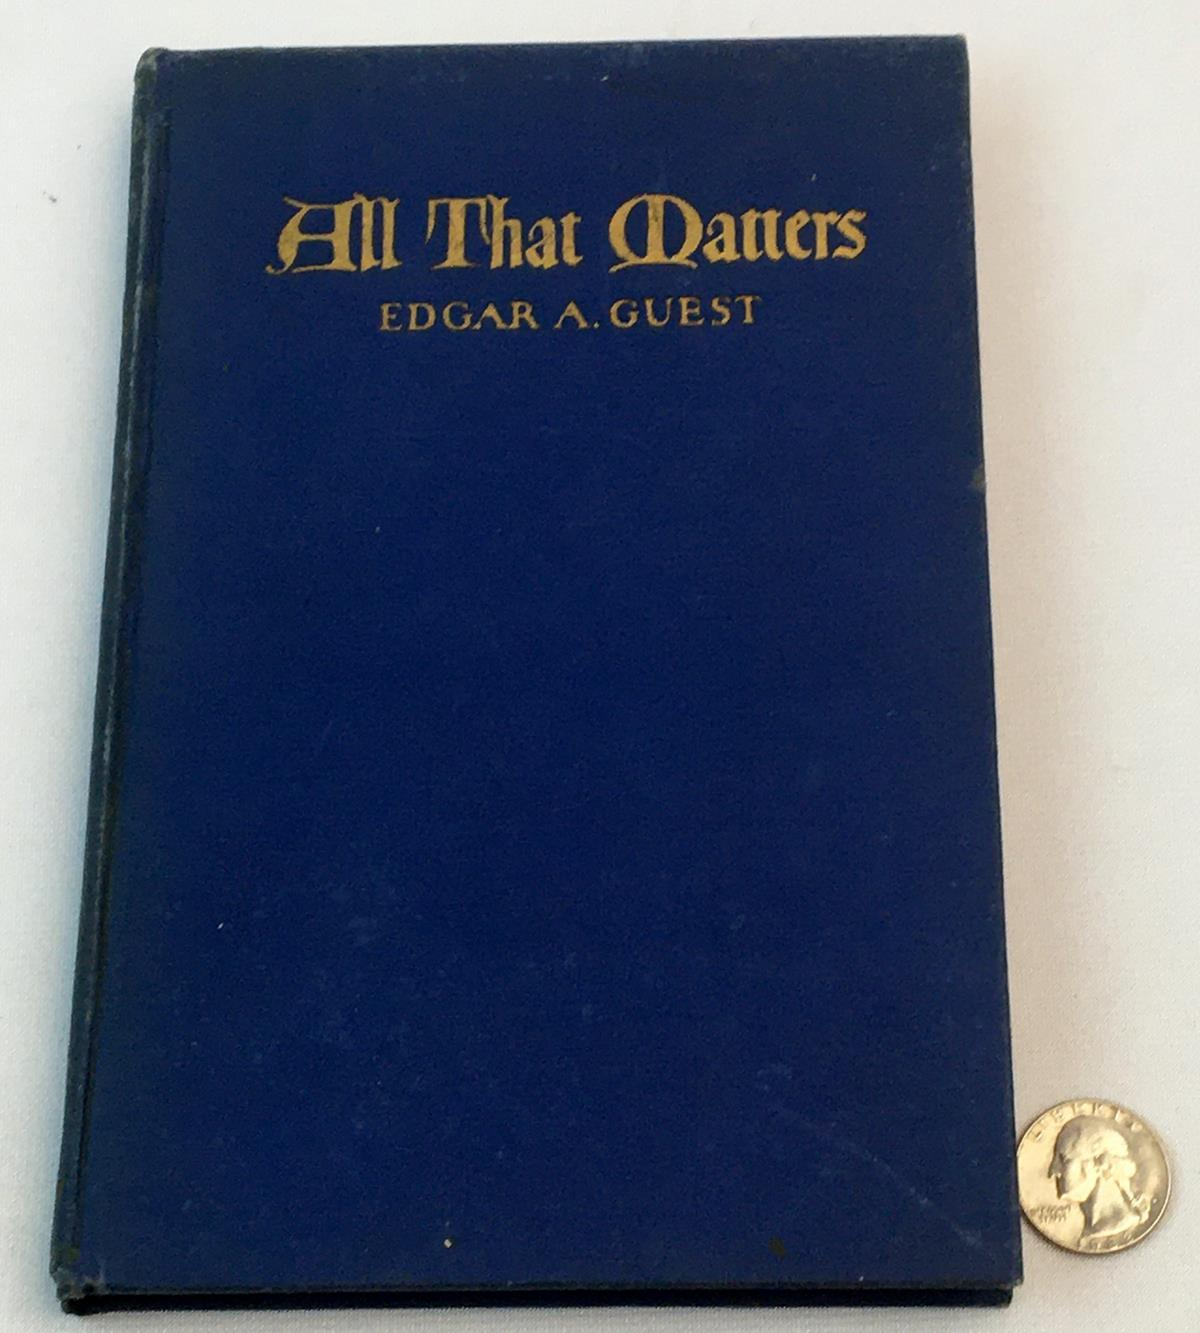 1922 All That Matters by Edgar A. Guest ILLUSTRATED